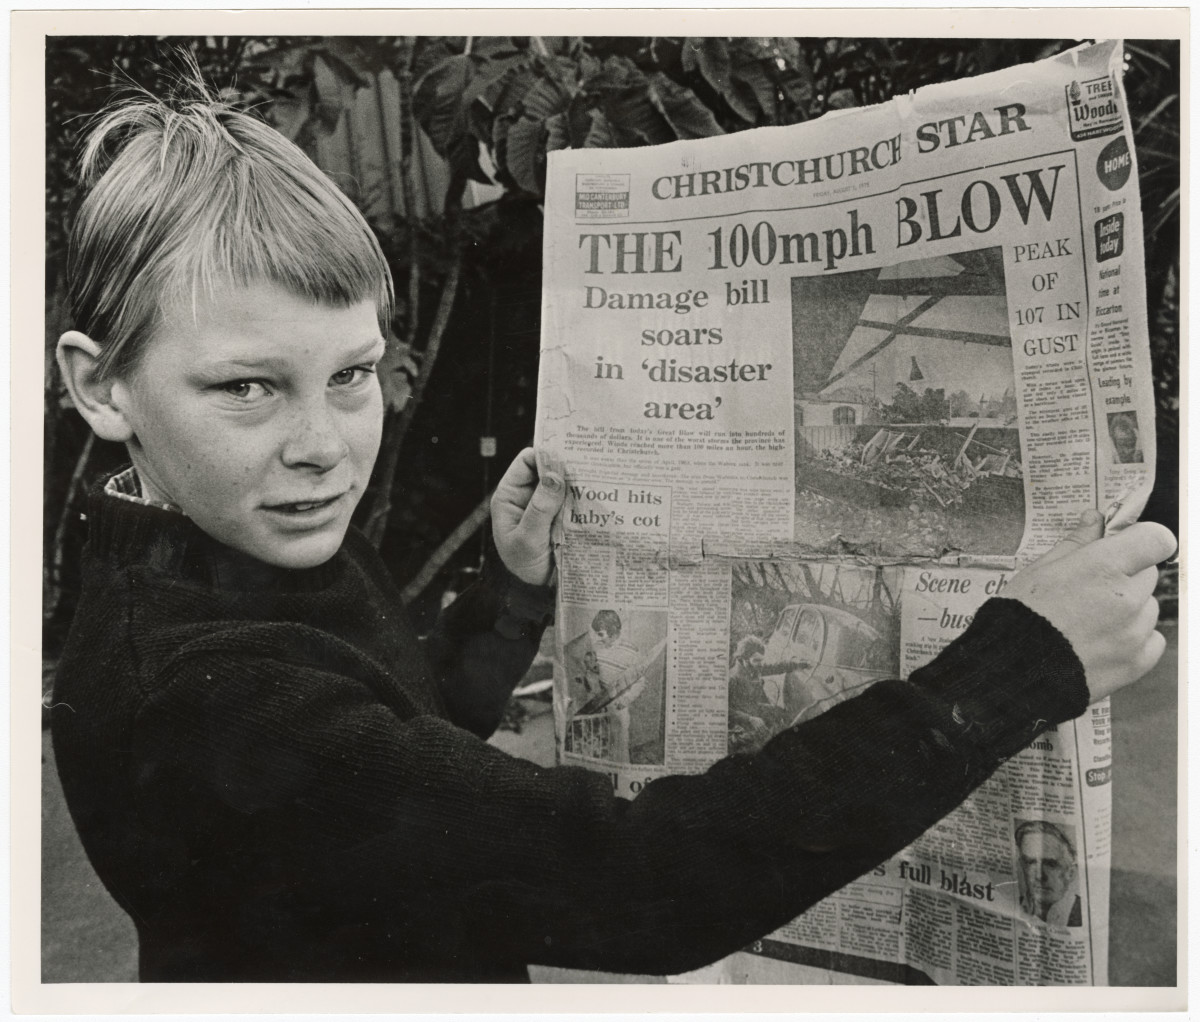 Cameron Romeril with an article on the Big Blow storm. 3 August 1985. Christchurch Star archive. In copyright. CCL-StarP-02897A https://discoverywall.nz/album/1342/69971